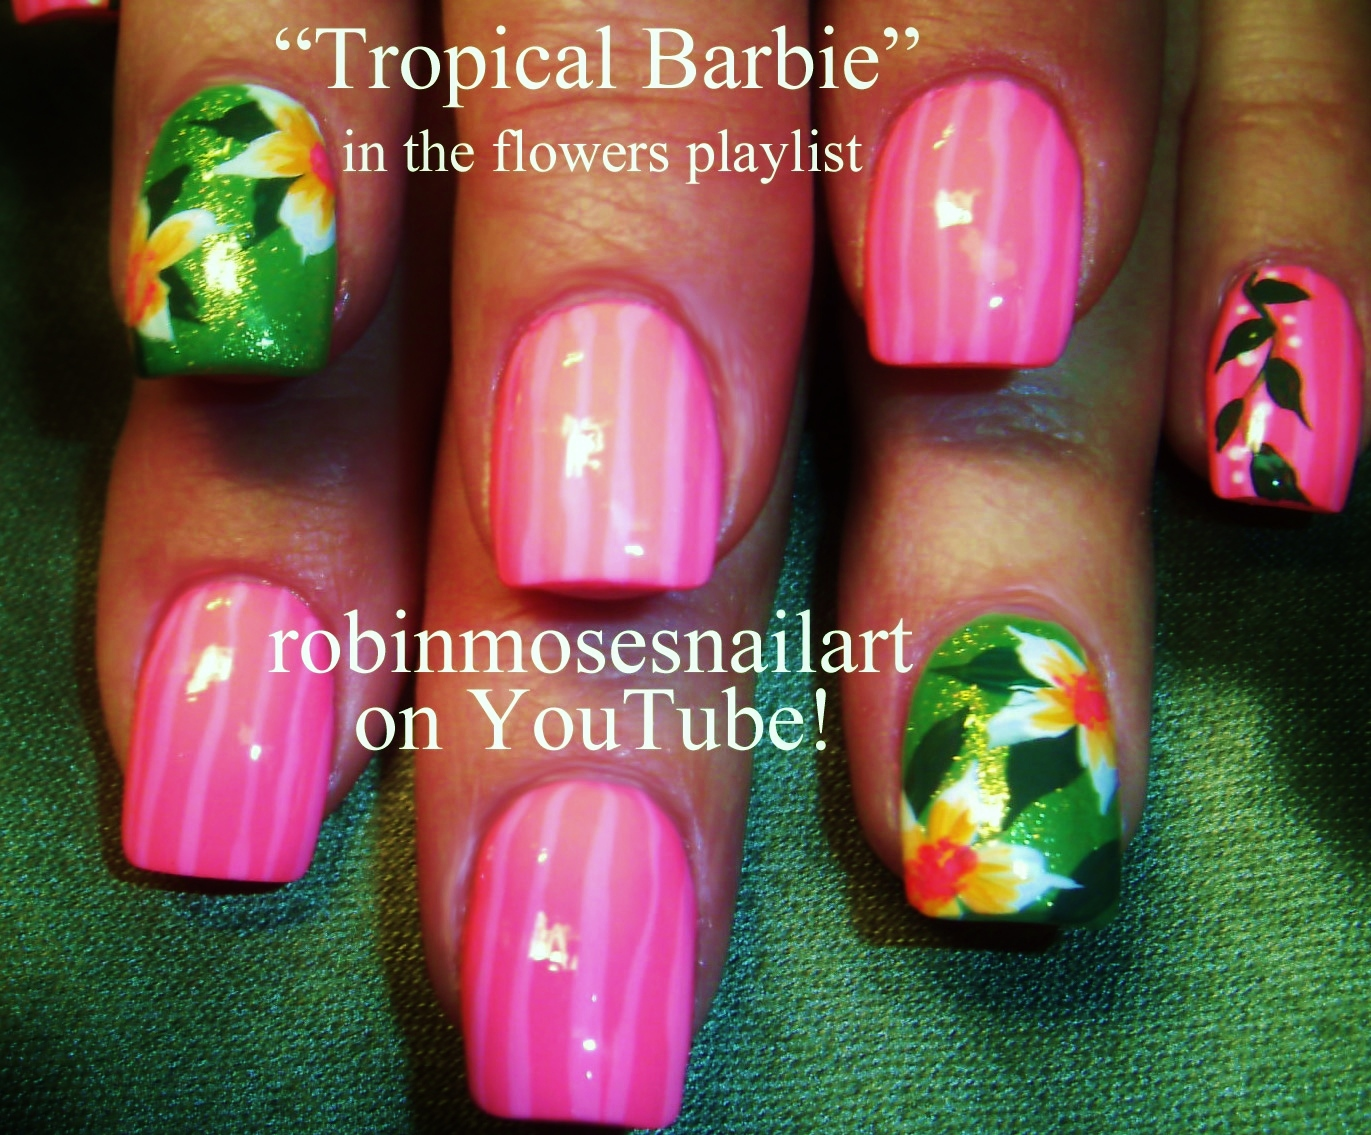 Robin moses nail art june 2015 diva nail art playlist long and lush designer nails with diamonds bling nail ideas for beginners advanced nail techs solutioingenieria Gallery